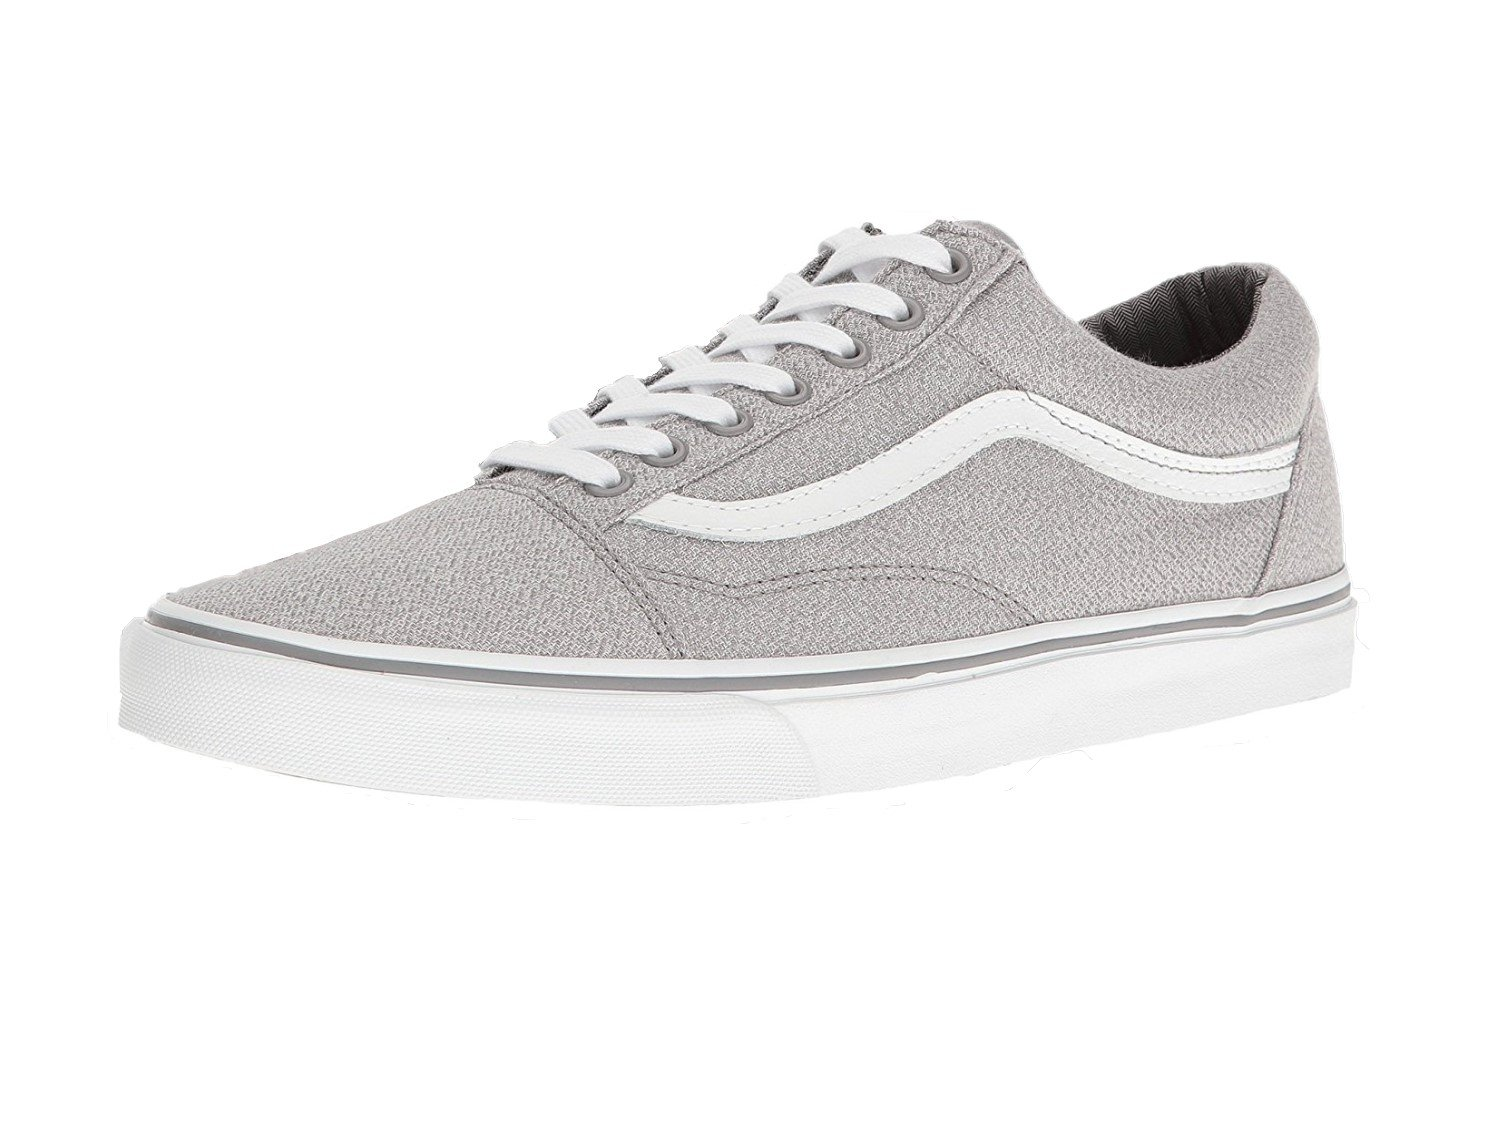 Vans Old Skool Unisex Adults' Low-Top Trainers B01I2B66AG 13 B(M) US Women / 11.5 D(M) US Men|(Suiting) Frost Grey/True White